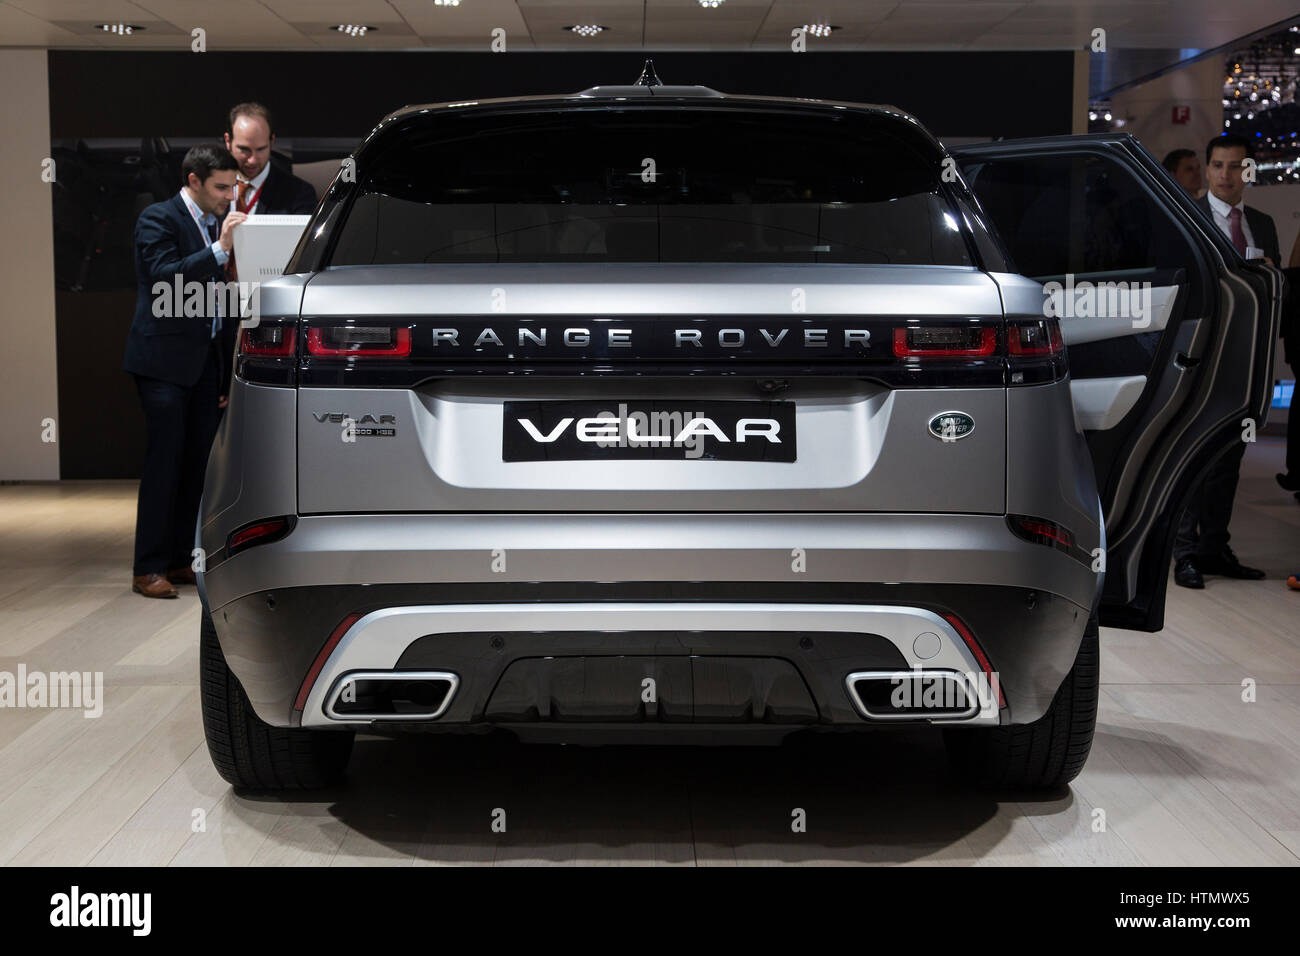 Range rover velar at the 87th international geneva motor show stock image